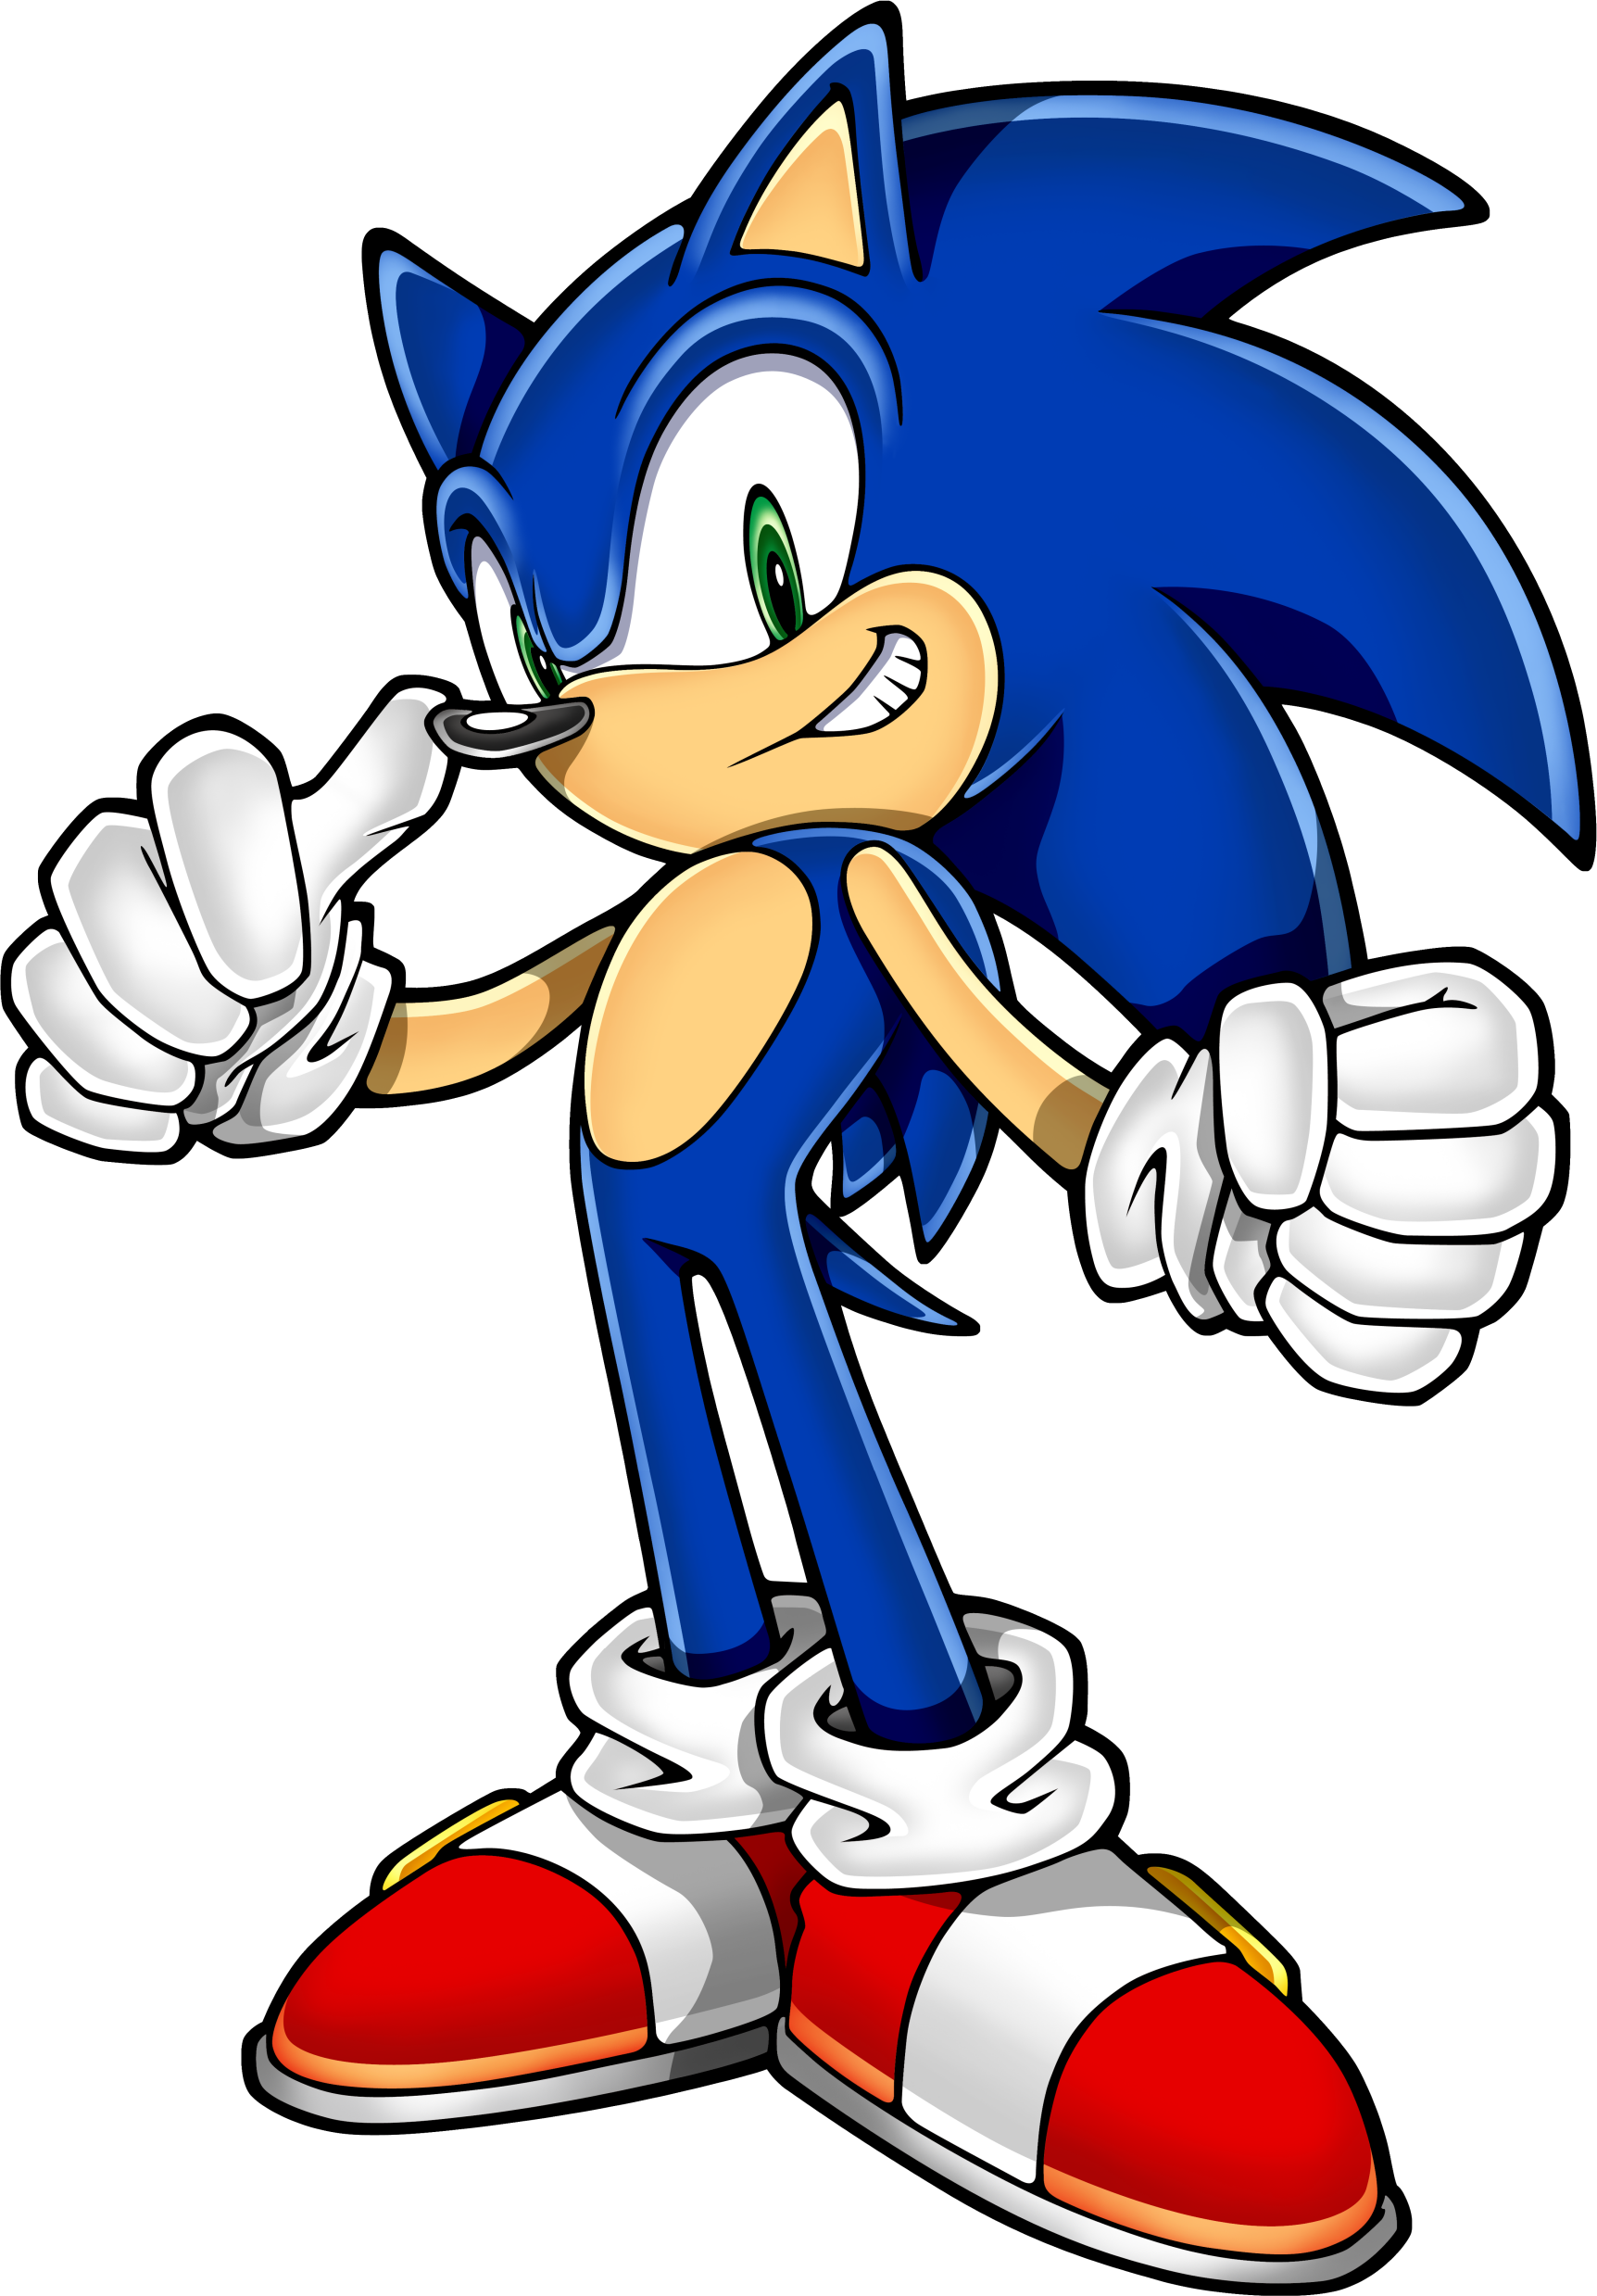 Sonic_Art_Assets_DVD_-_Sonic_The_Hedgeho